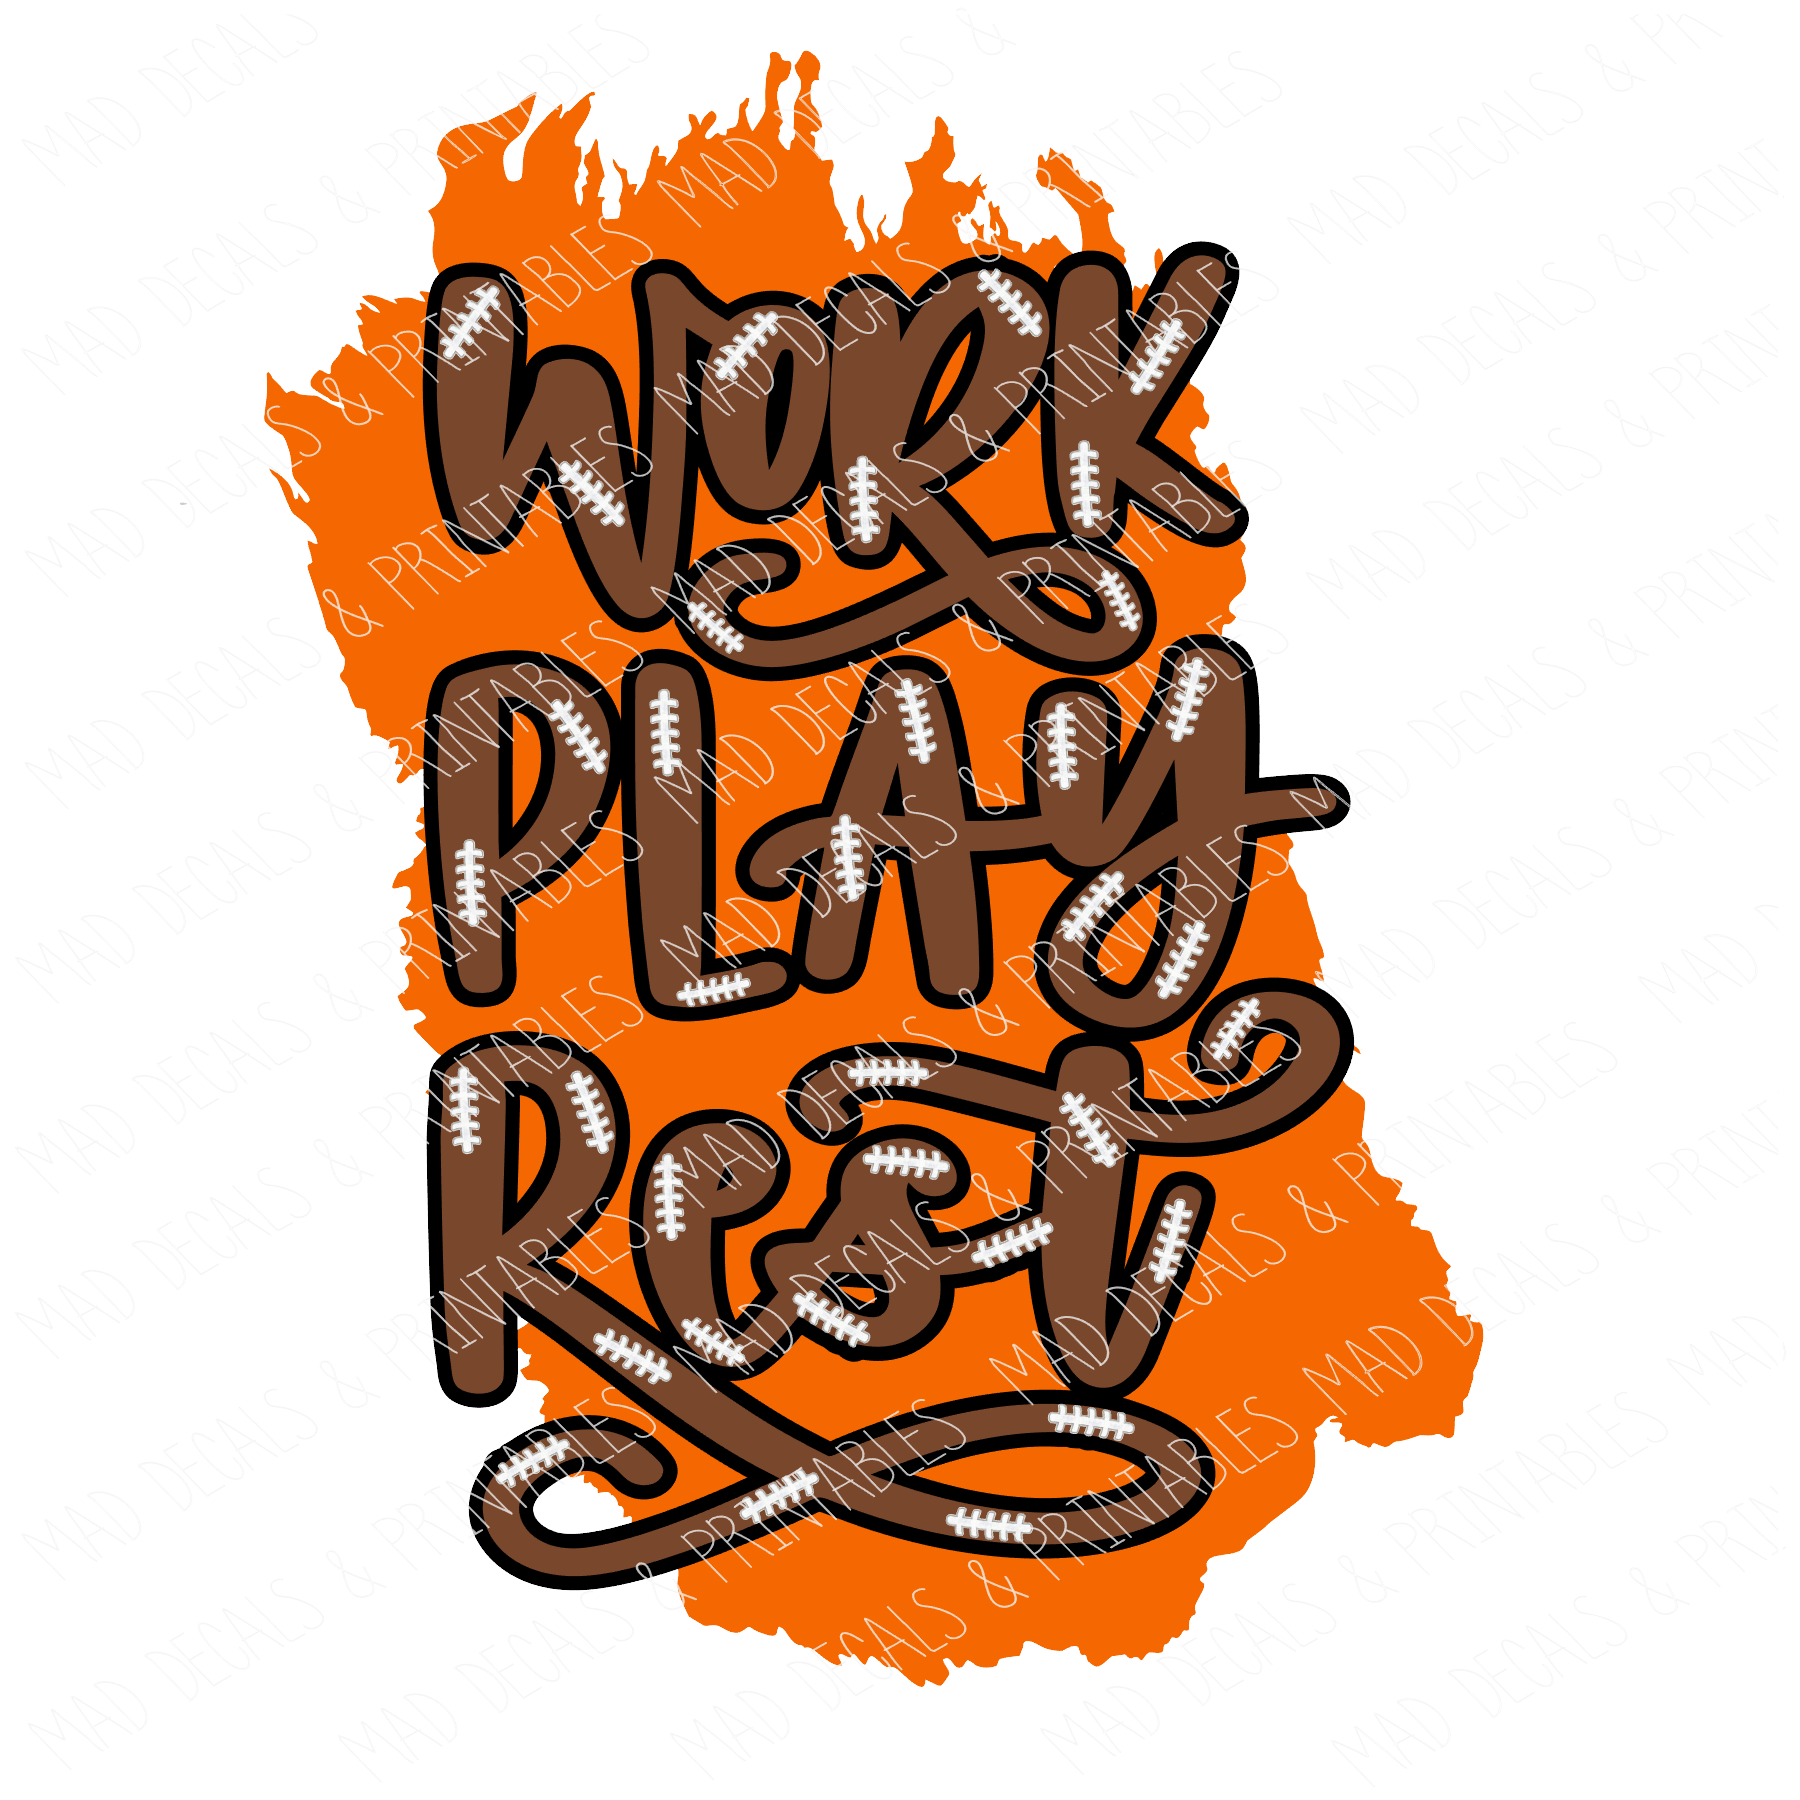 Orange Work Play Rest